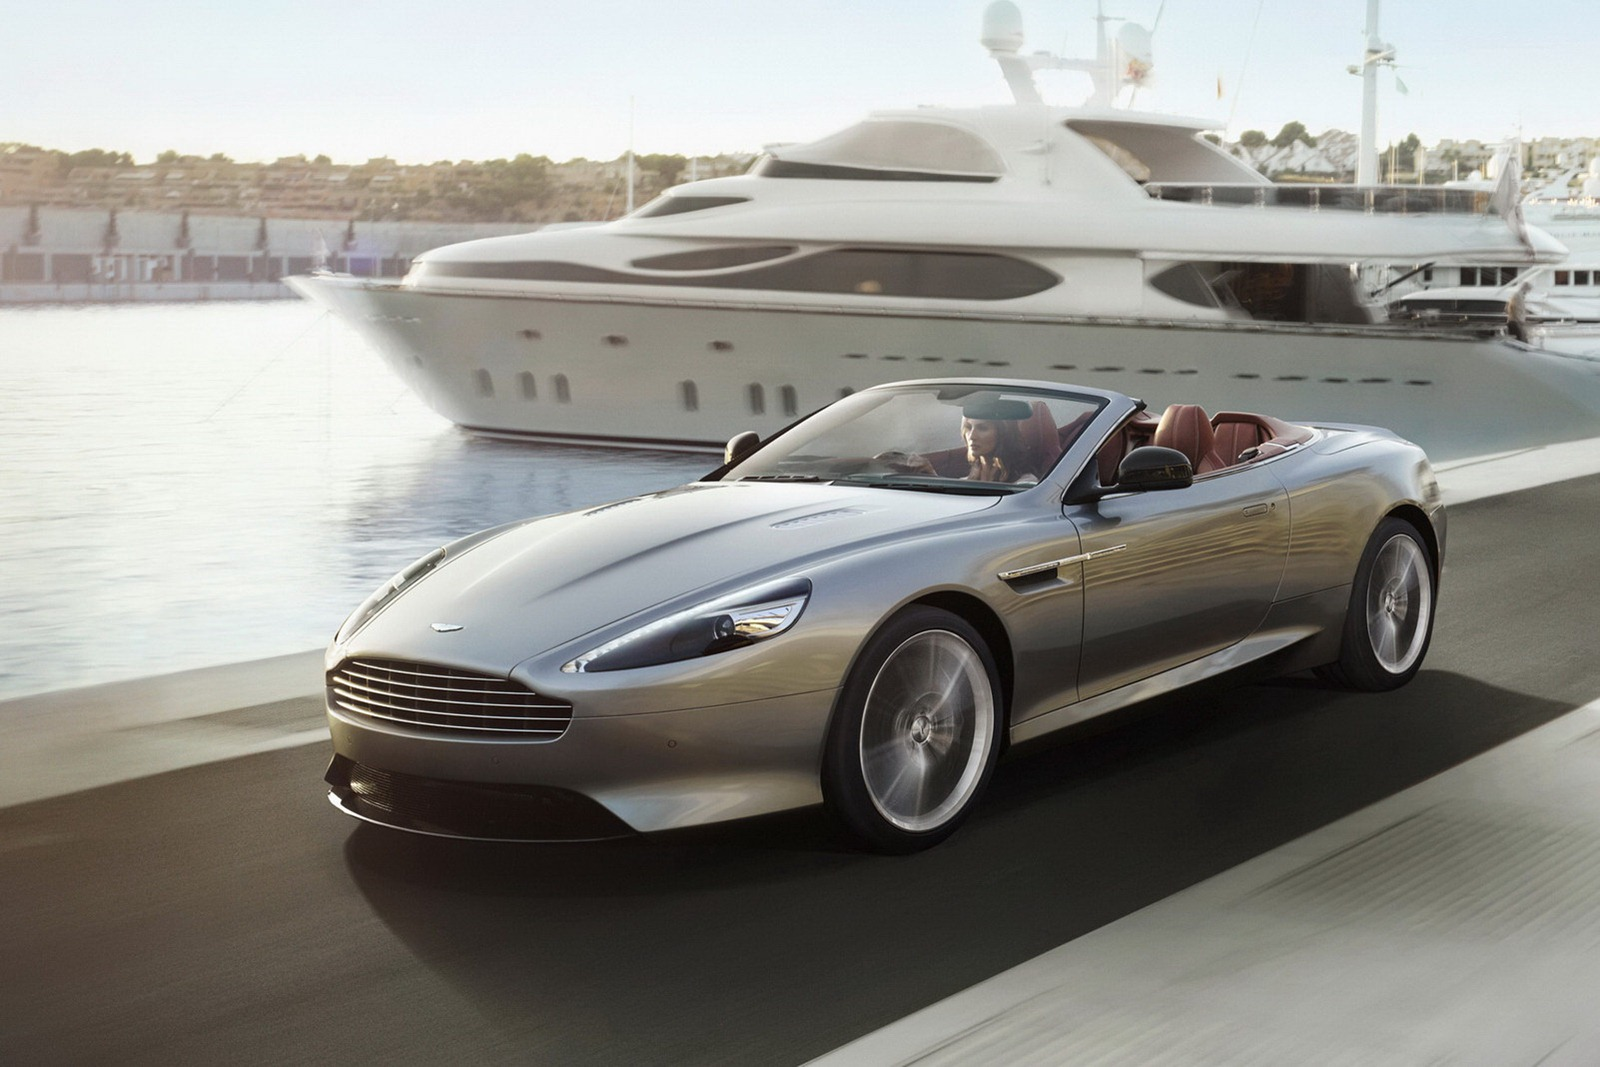 aston martin db9 facelift 2013 coup volante aston. Cars Review. Best American Auto & Cars Review